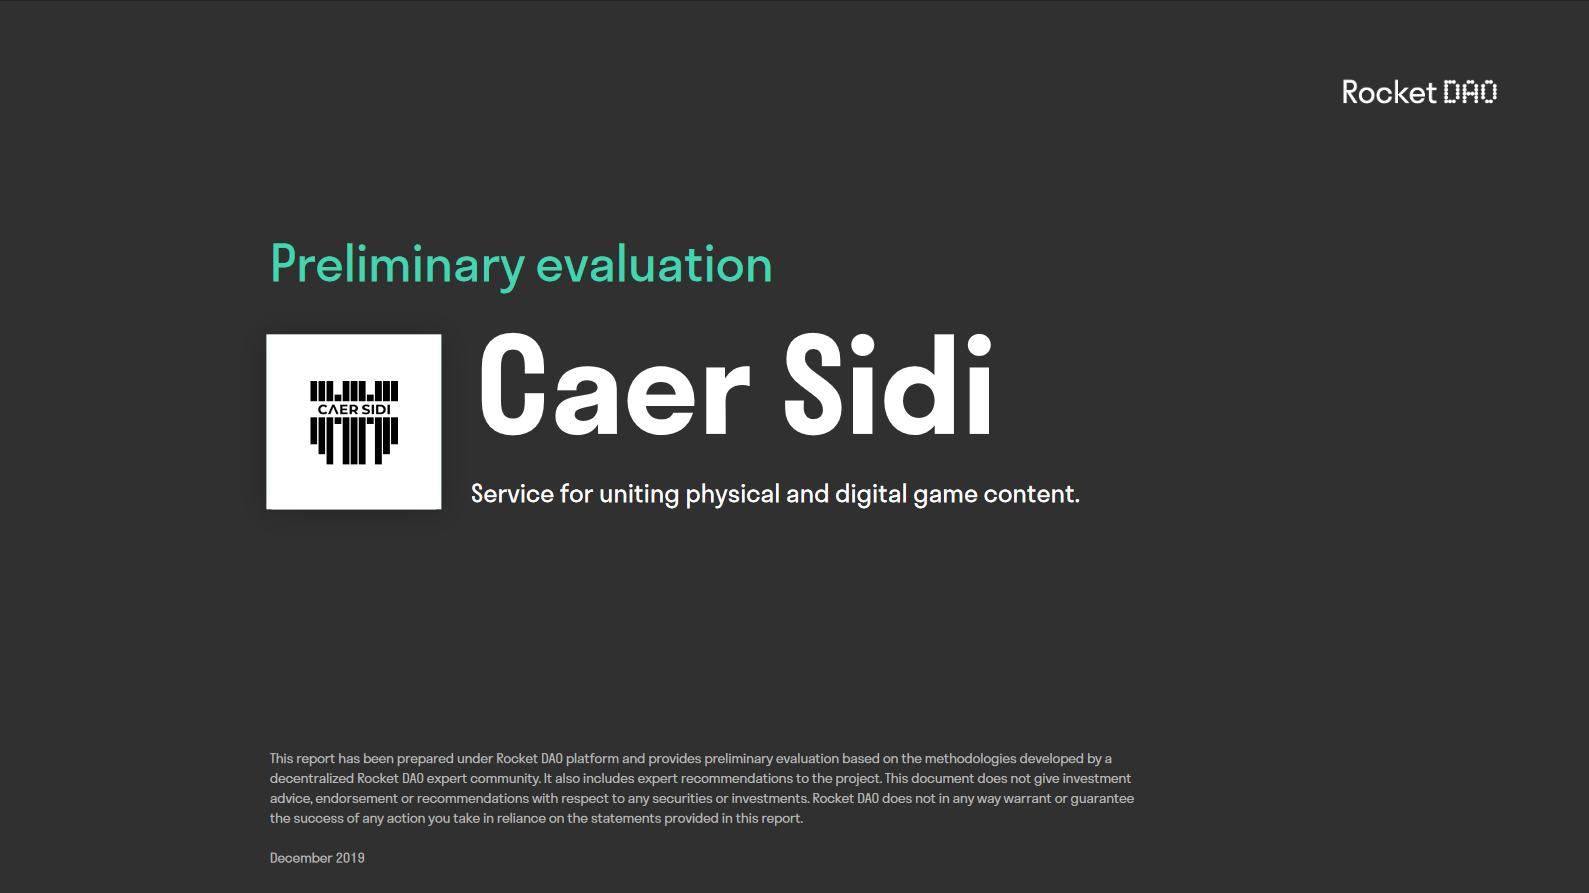 Caer Sidi - preliminary evaluation by experts of Rocket DAO